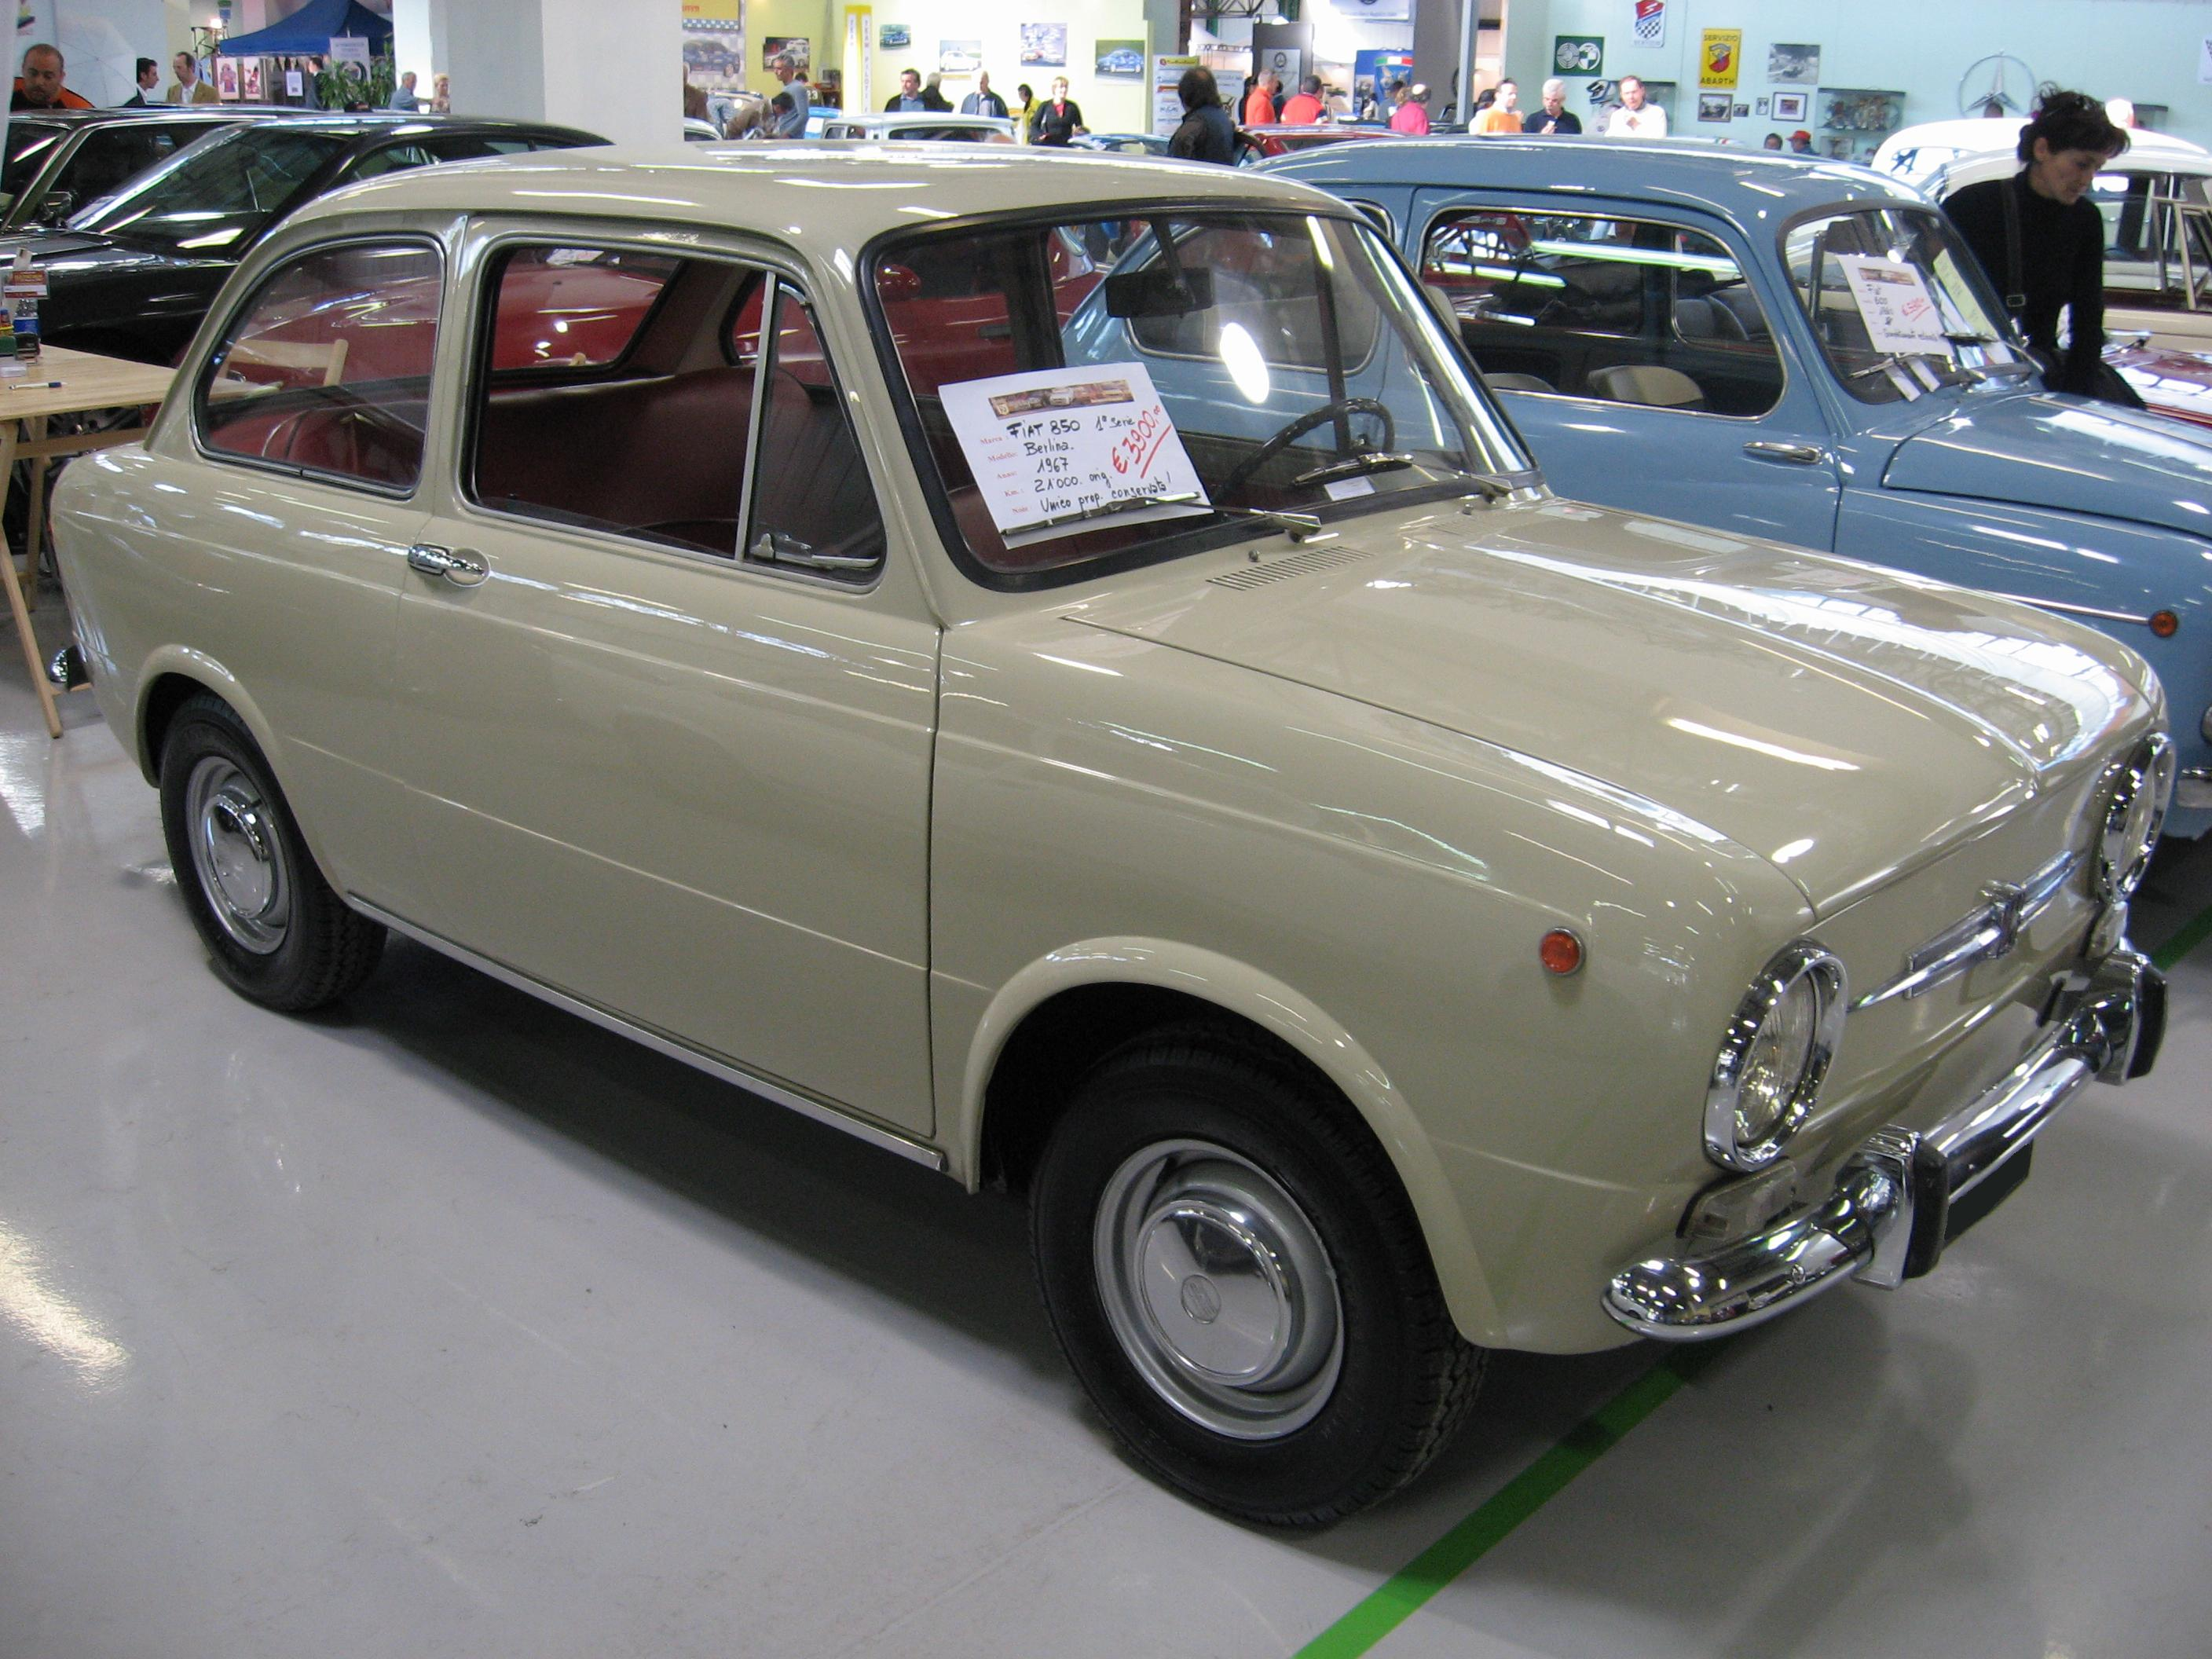 Fiat 850 Photos, Informations, Articles - BestCarMag.com